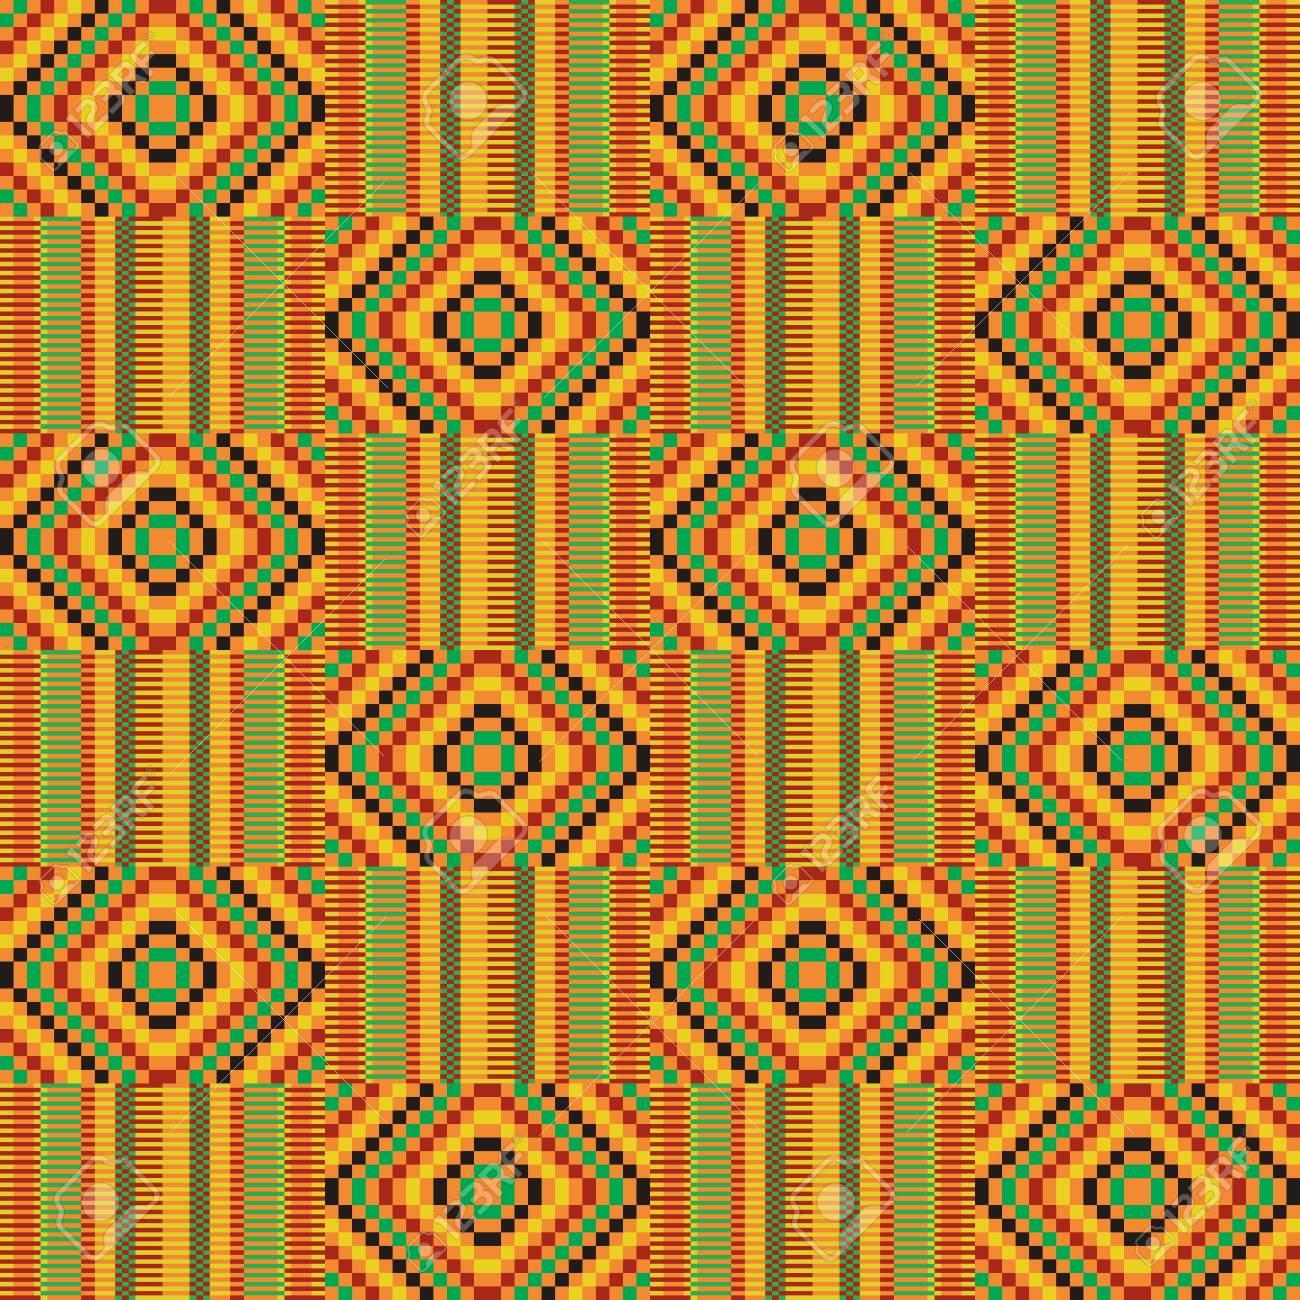 African textile fabric, cloth kente. Ethnic seamless pattern. - 104390759